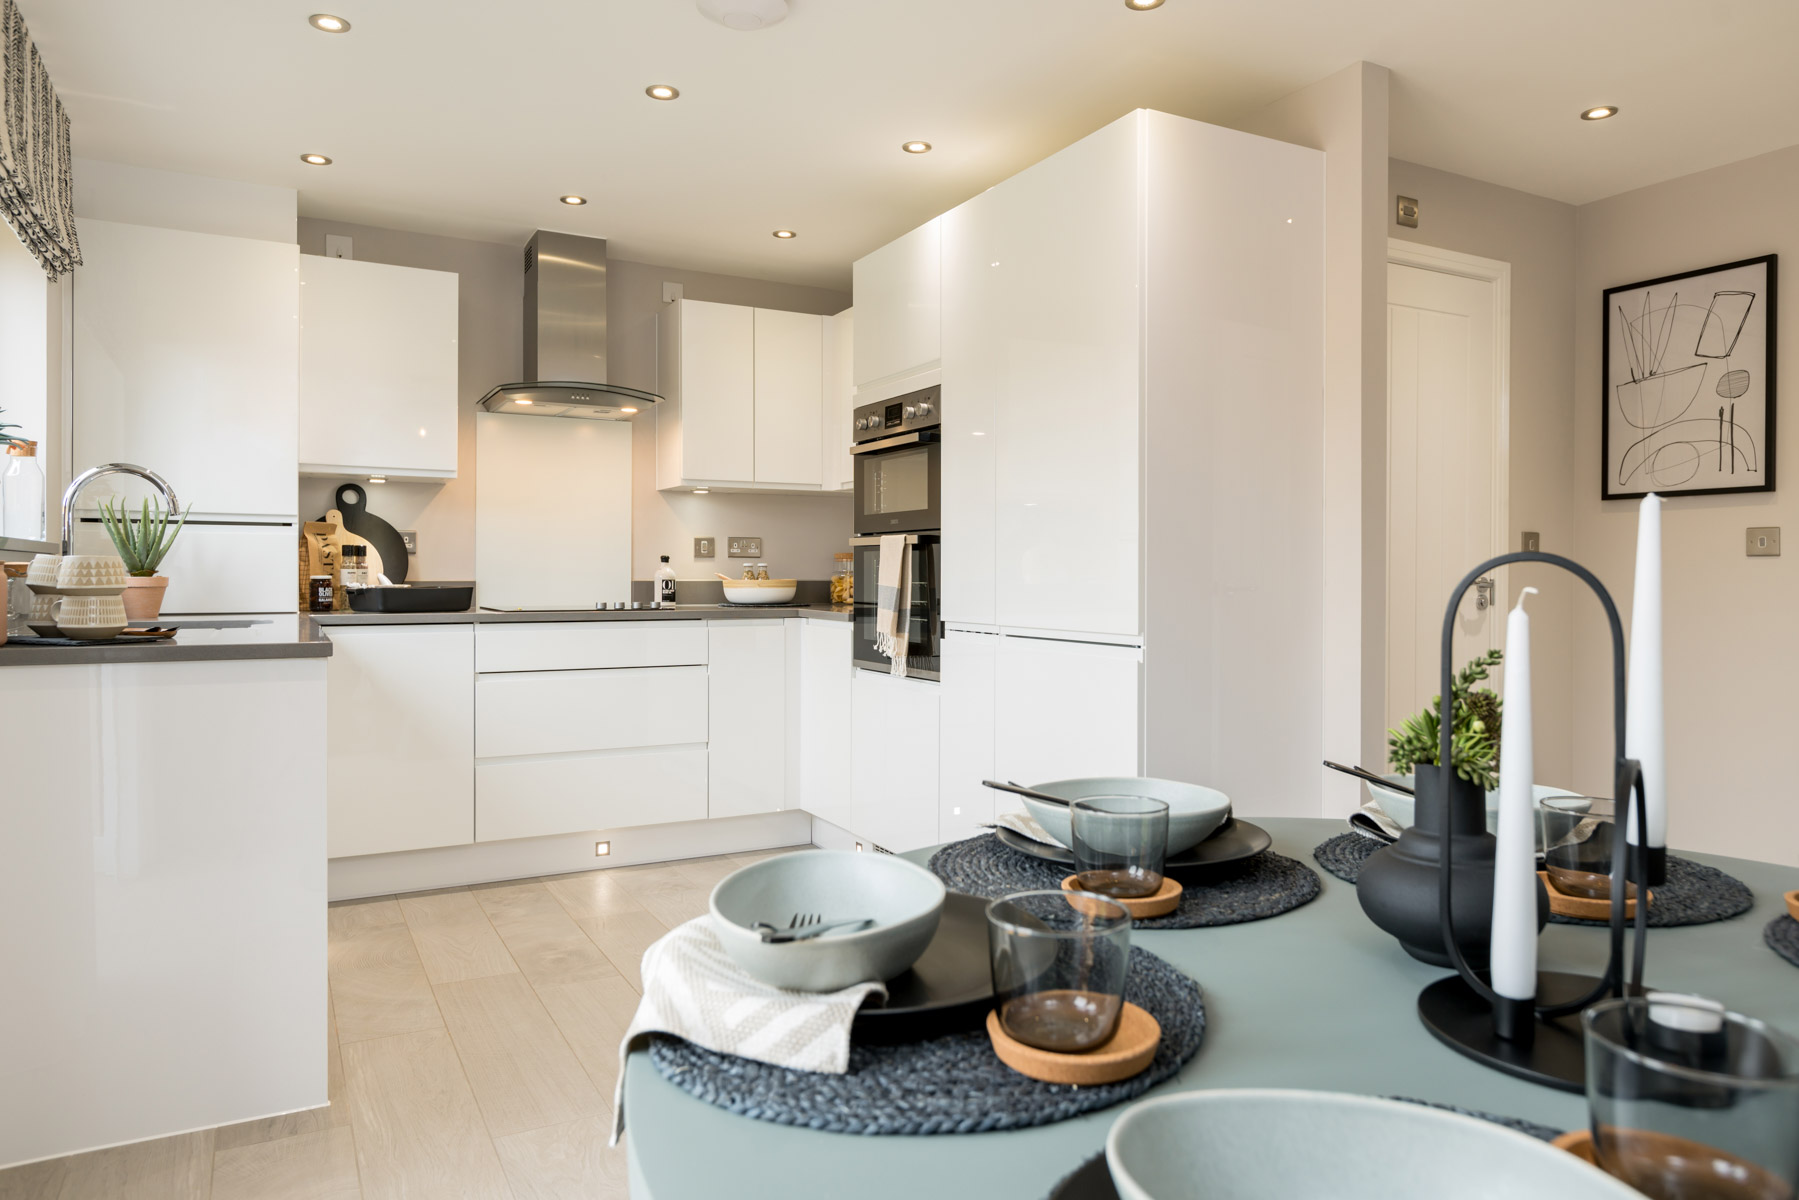 TW Exeter - Riverside Walk - Byford example kitchen 2